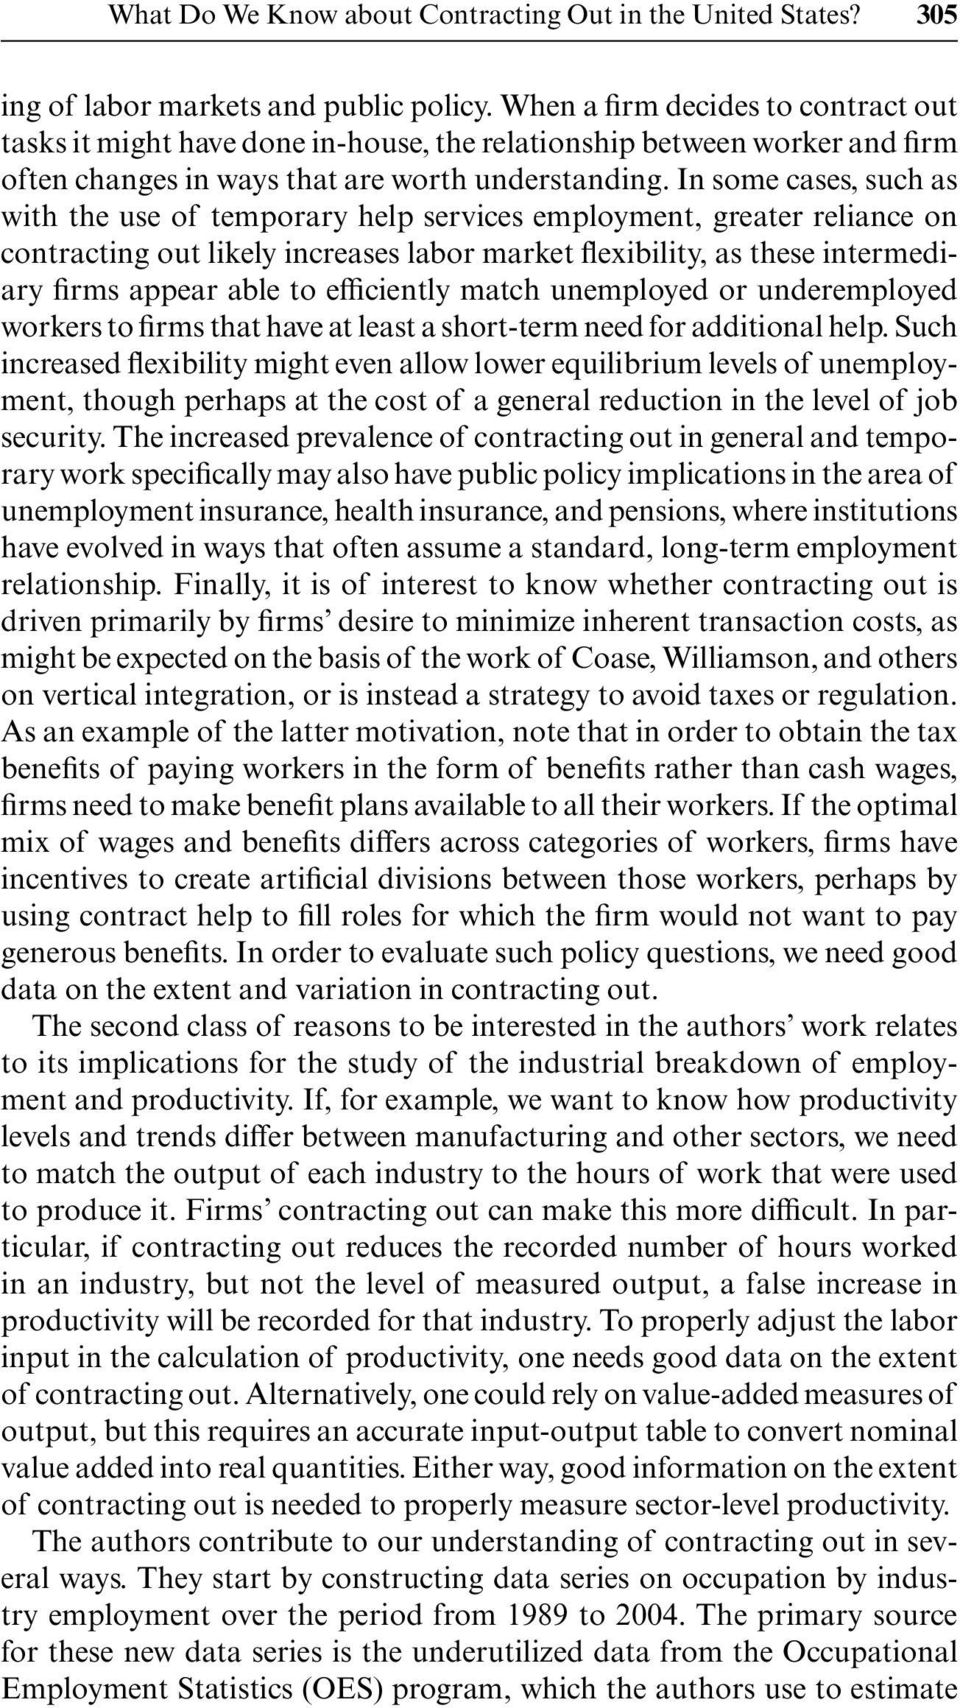 In some cases, such as with the use of temporary help services employment, greater reliance on contracting out likely increases labor market flexibility, as these intermediary firms appear able to